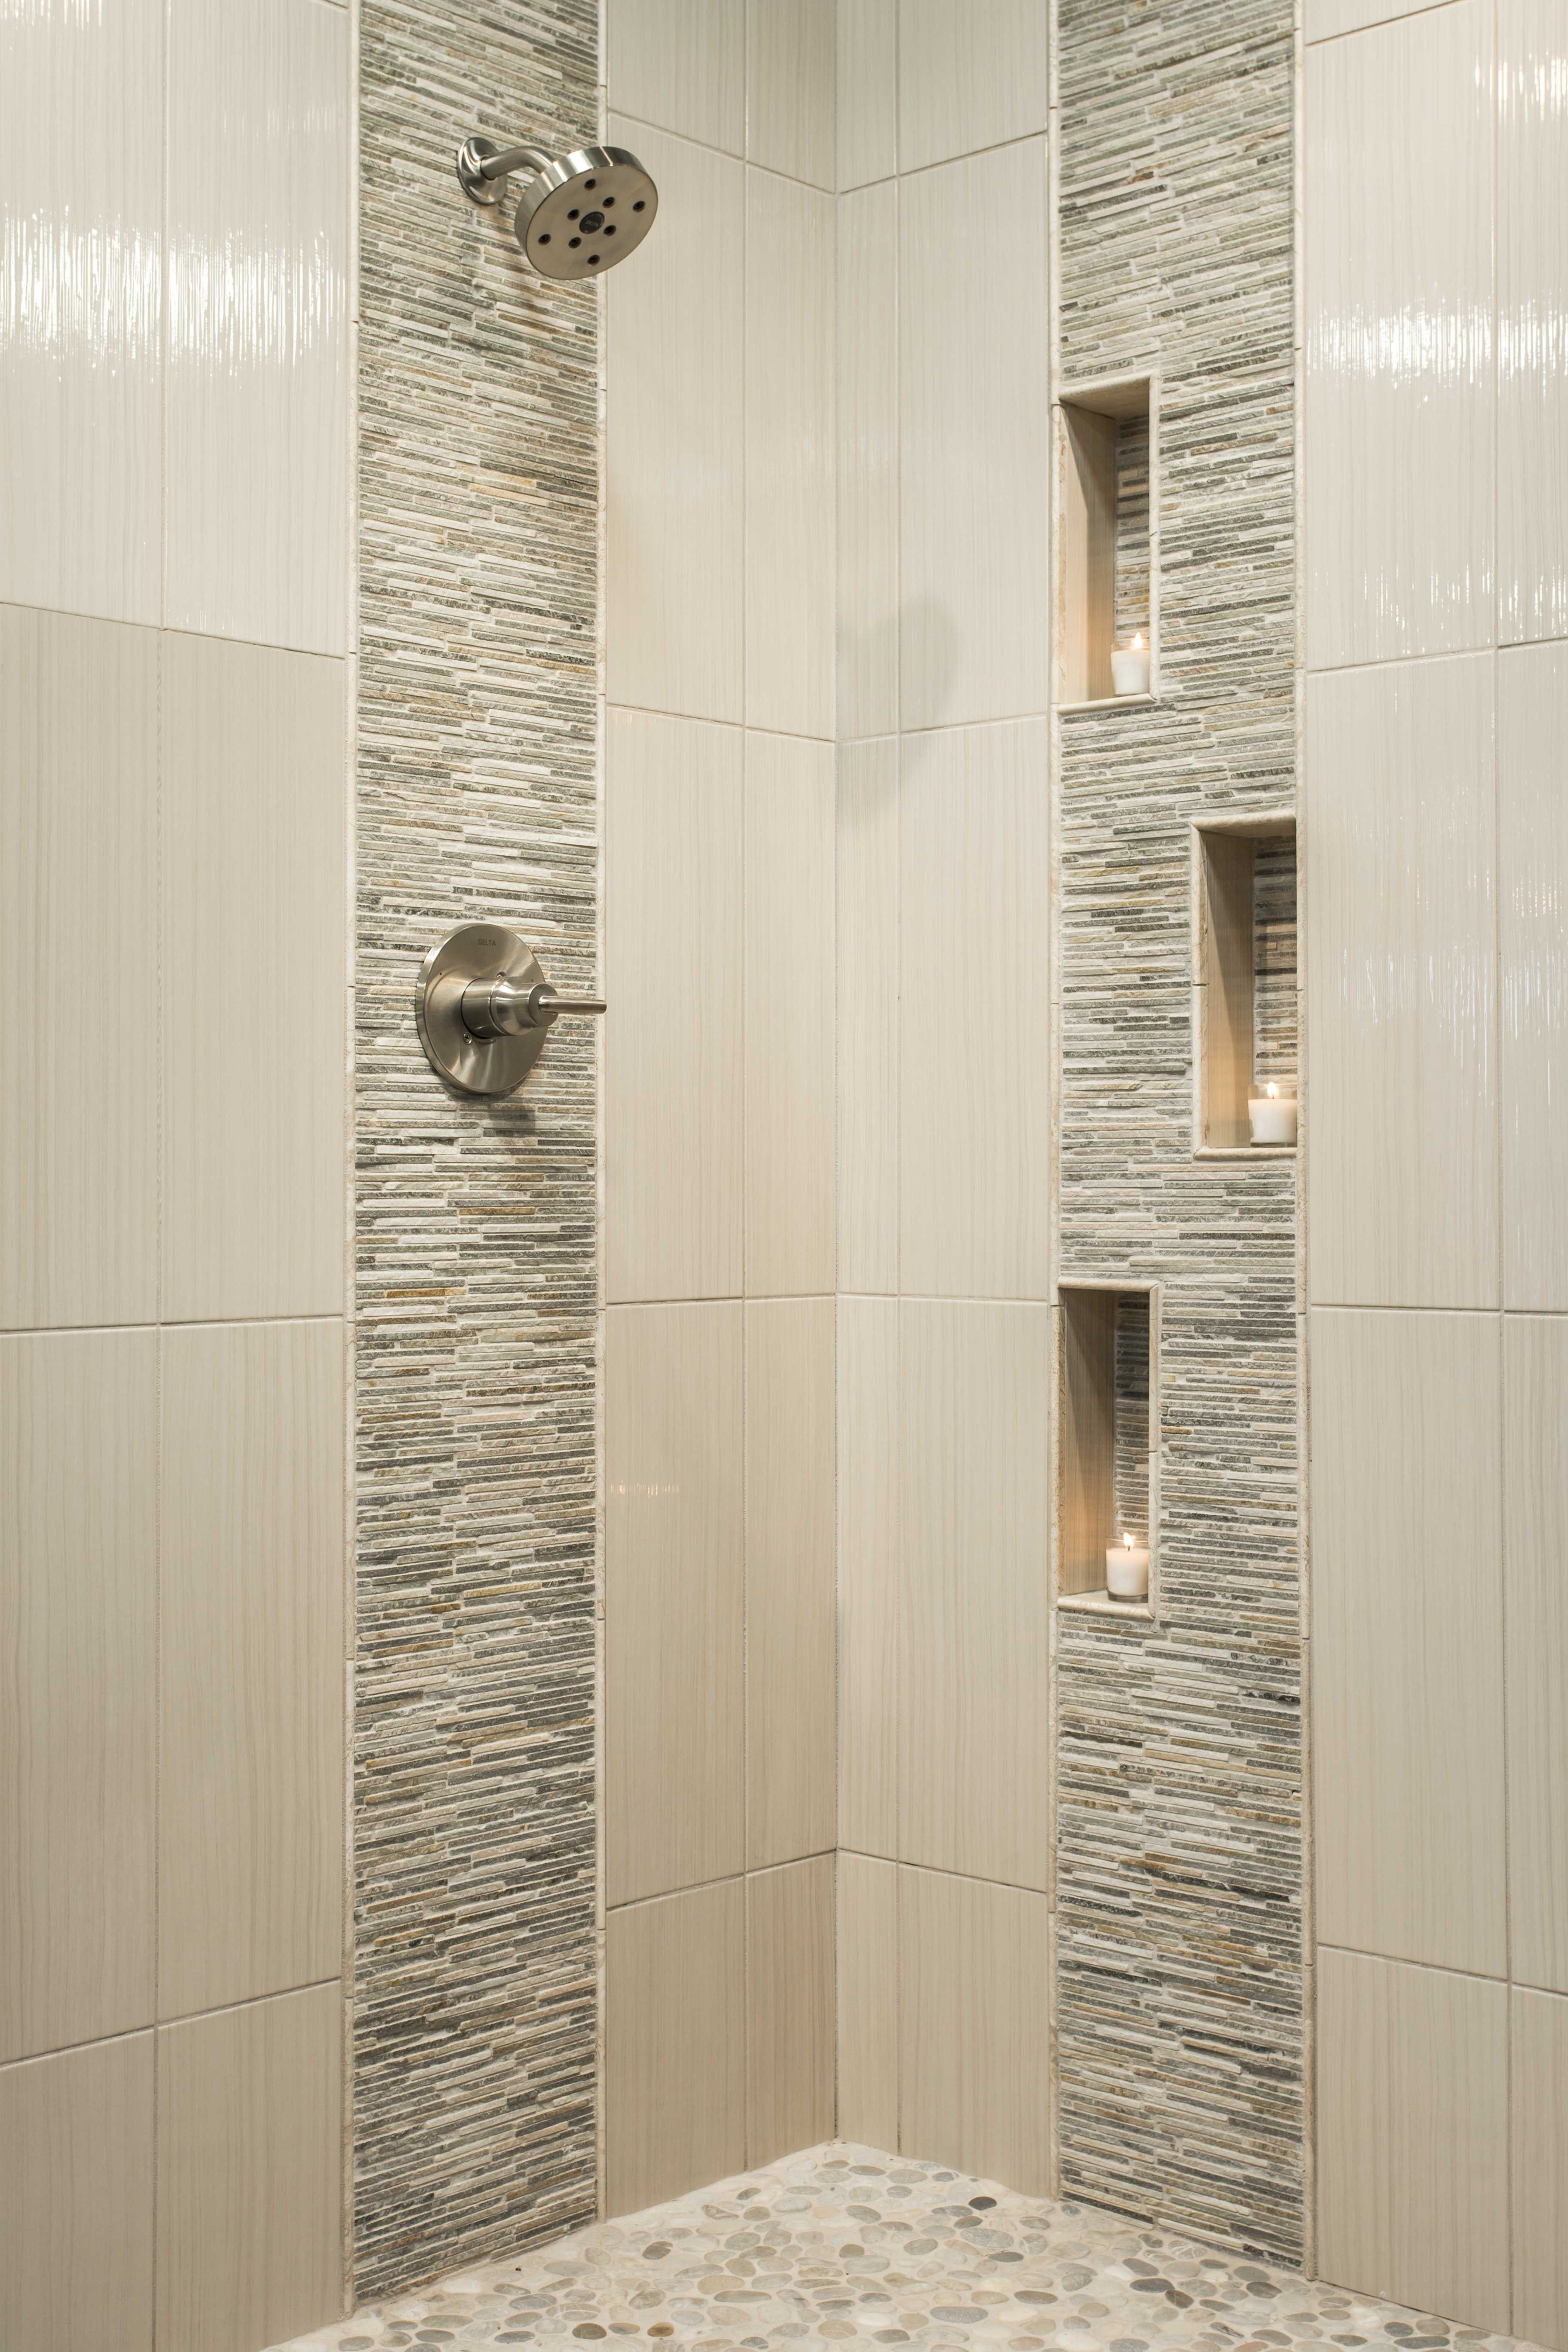 Bathroom shower tile pinteres Bathroom tile decorating ideas